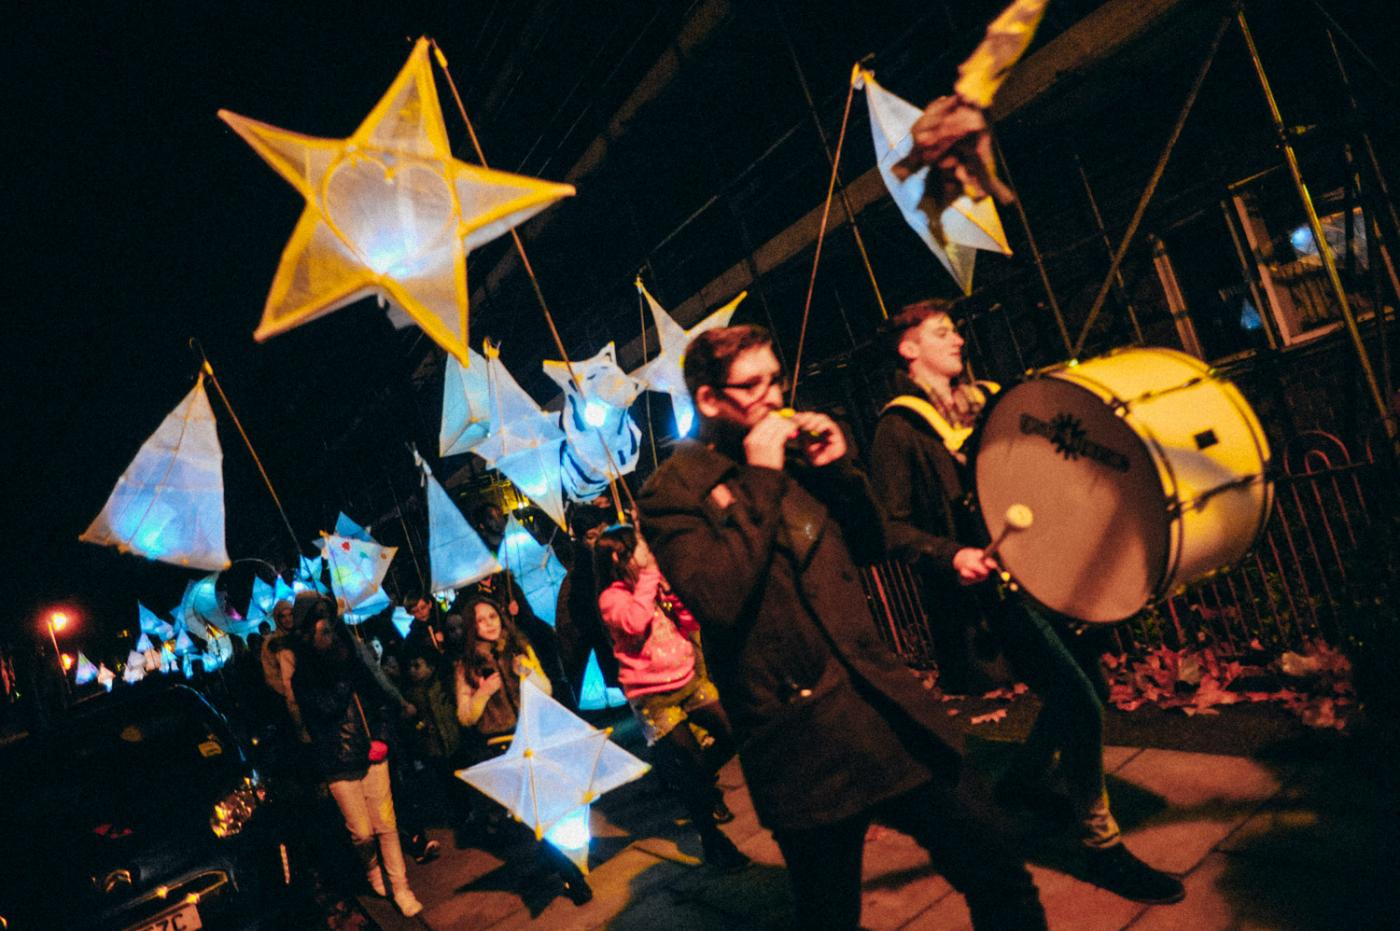 Marching band at a lantern parade.